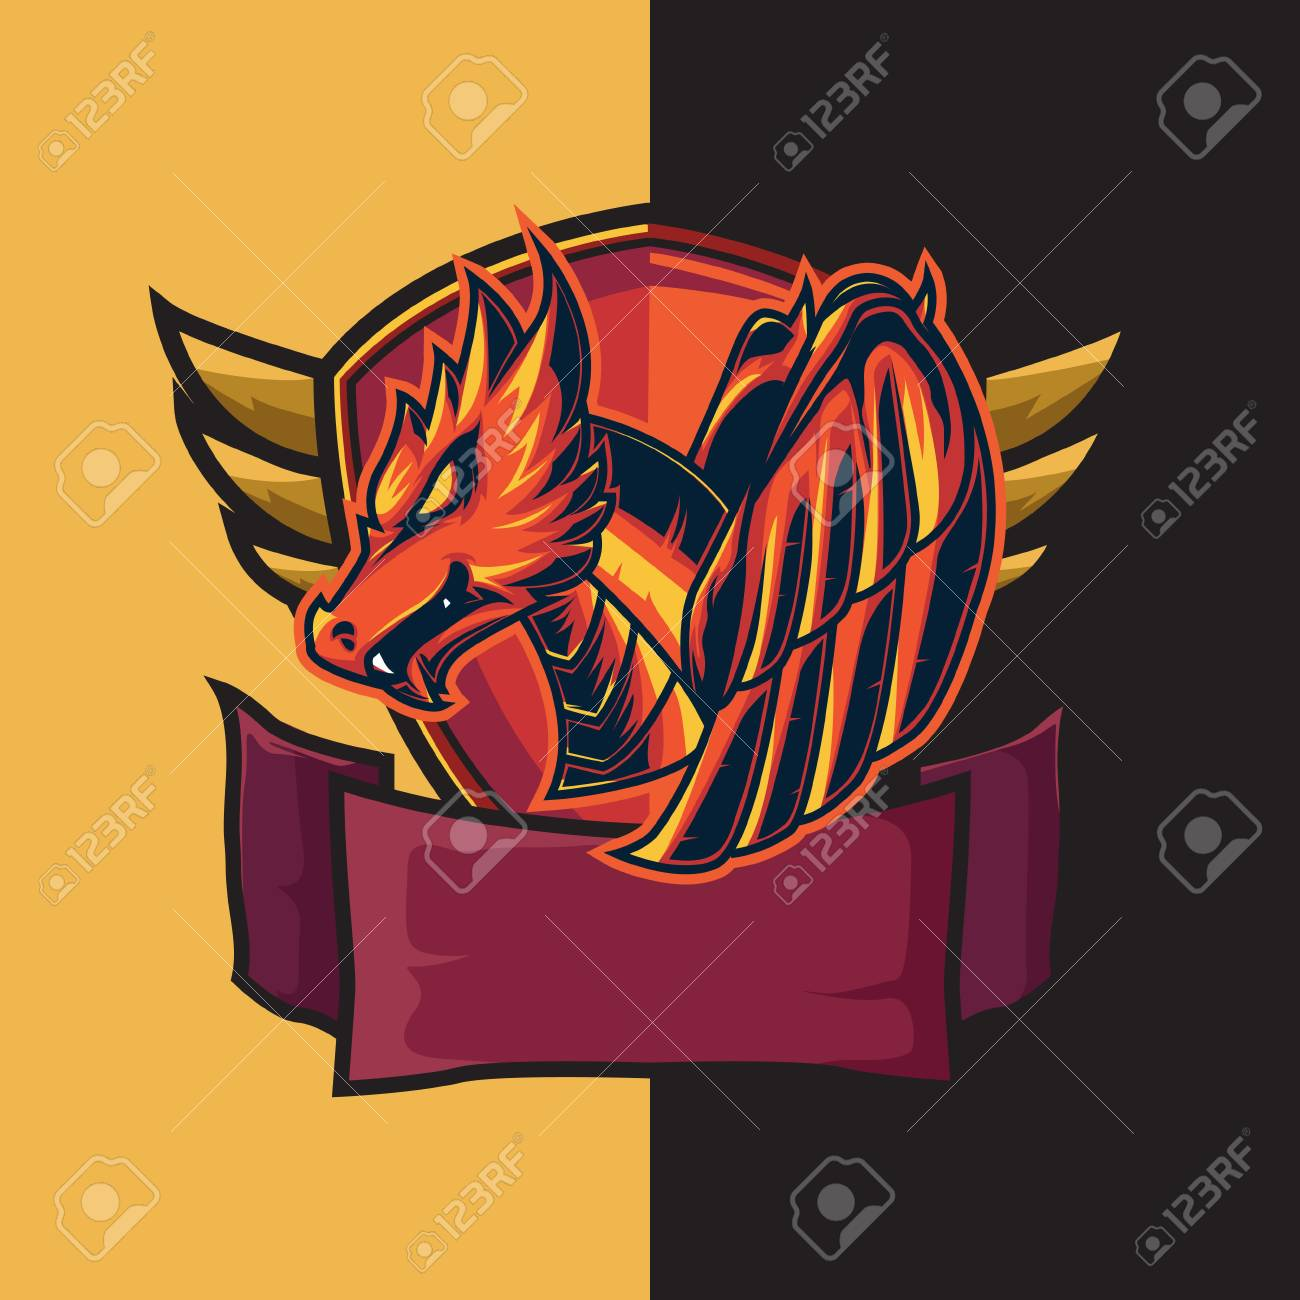 Esport logo for gaming with red dragon and shield theme